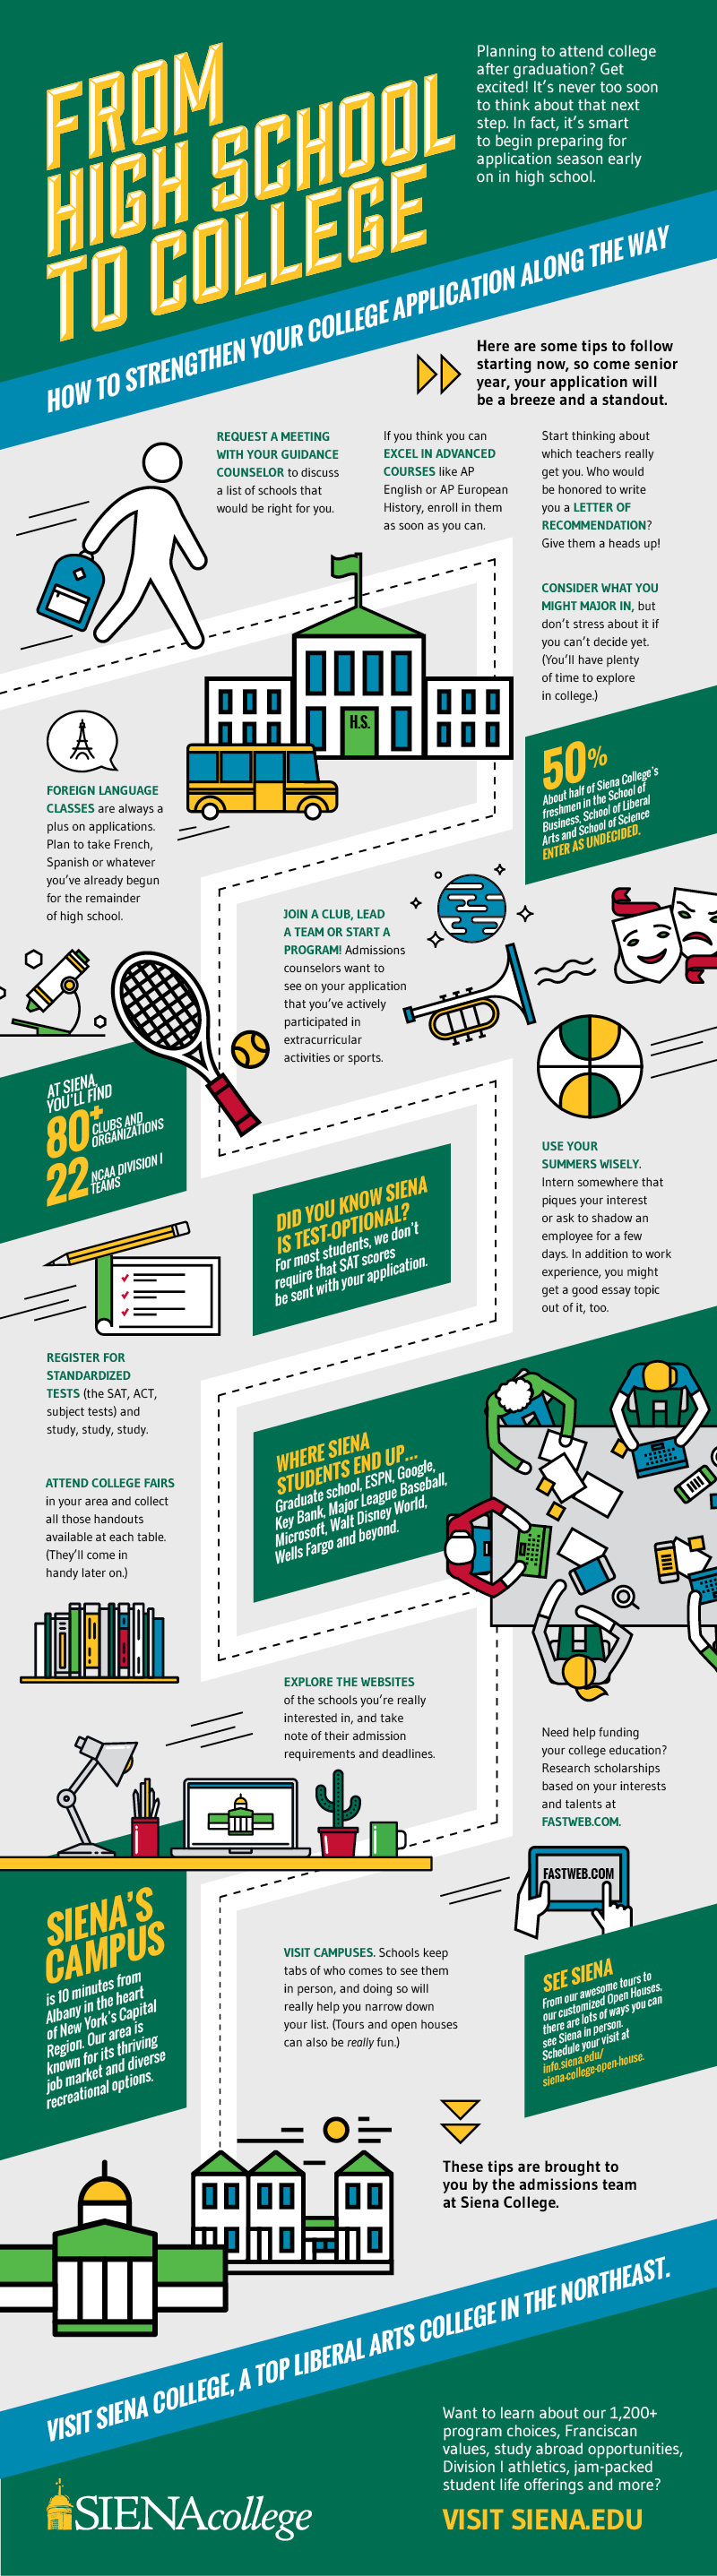 From High School to College - Sophomore infographic